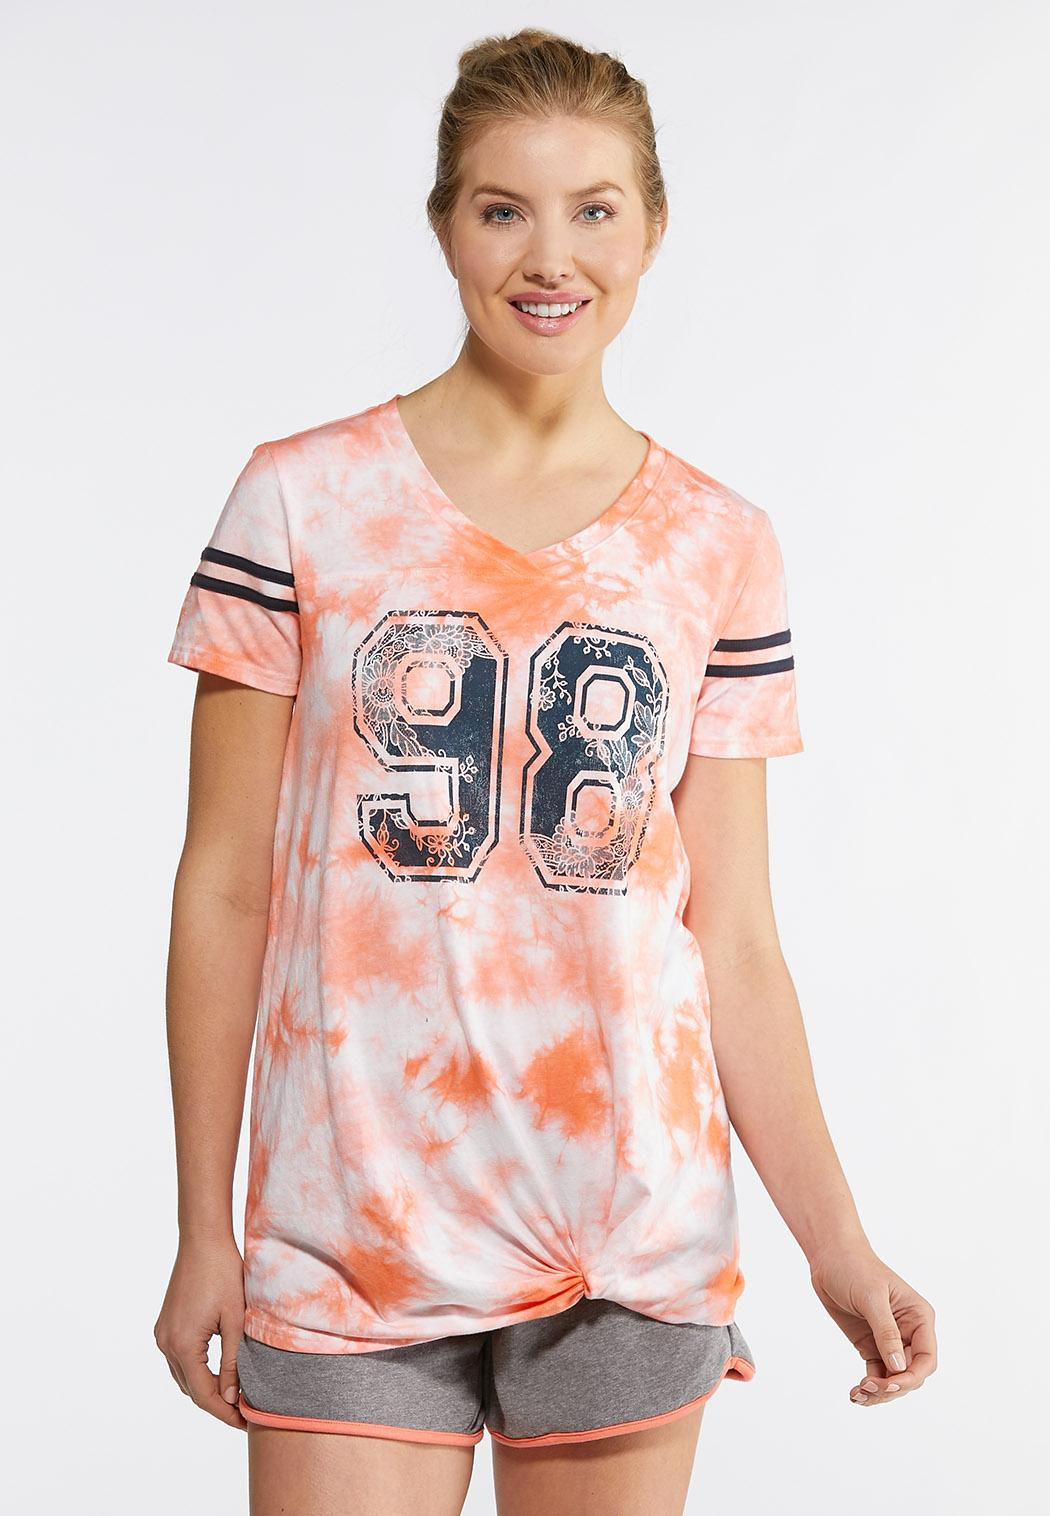 8926247f0d829 Plus Size Tie Dye Knotted Sport Tee Tops Cato Fashions